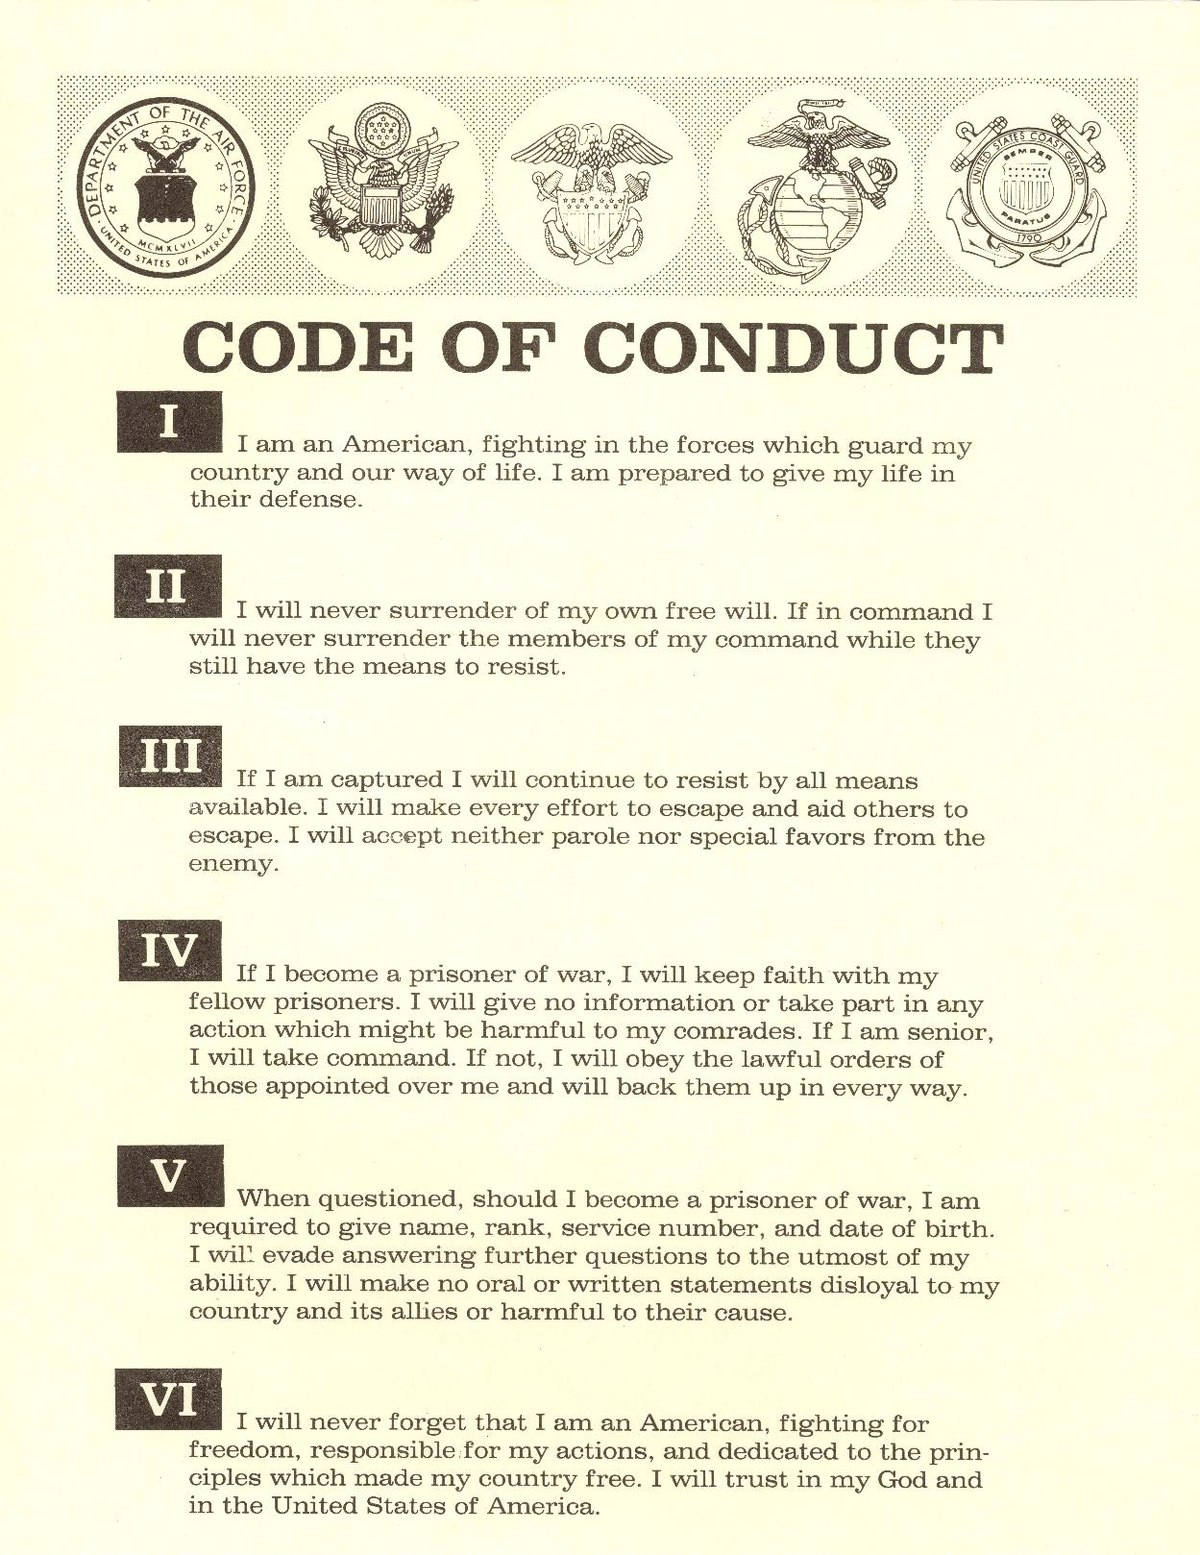 Code of the united states fighting force wikipedia for Code of conduct sample template